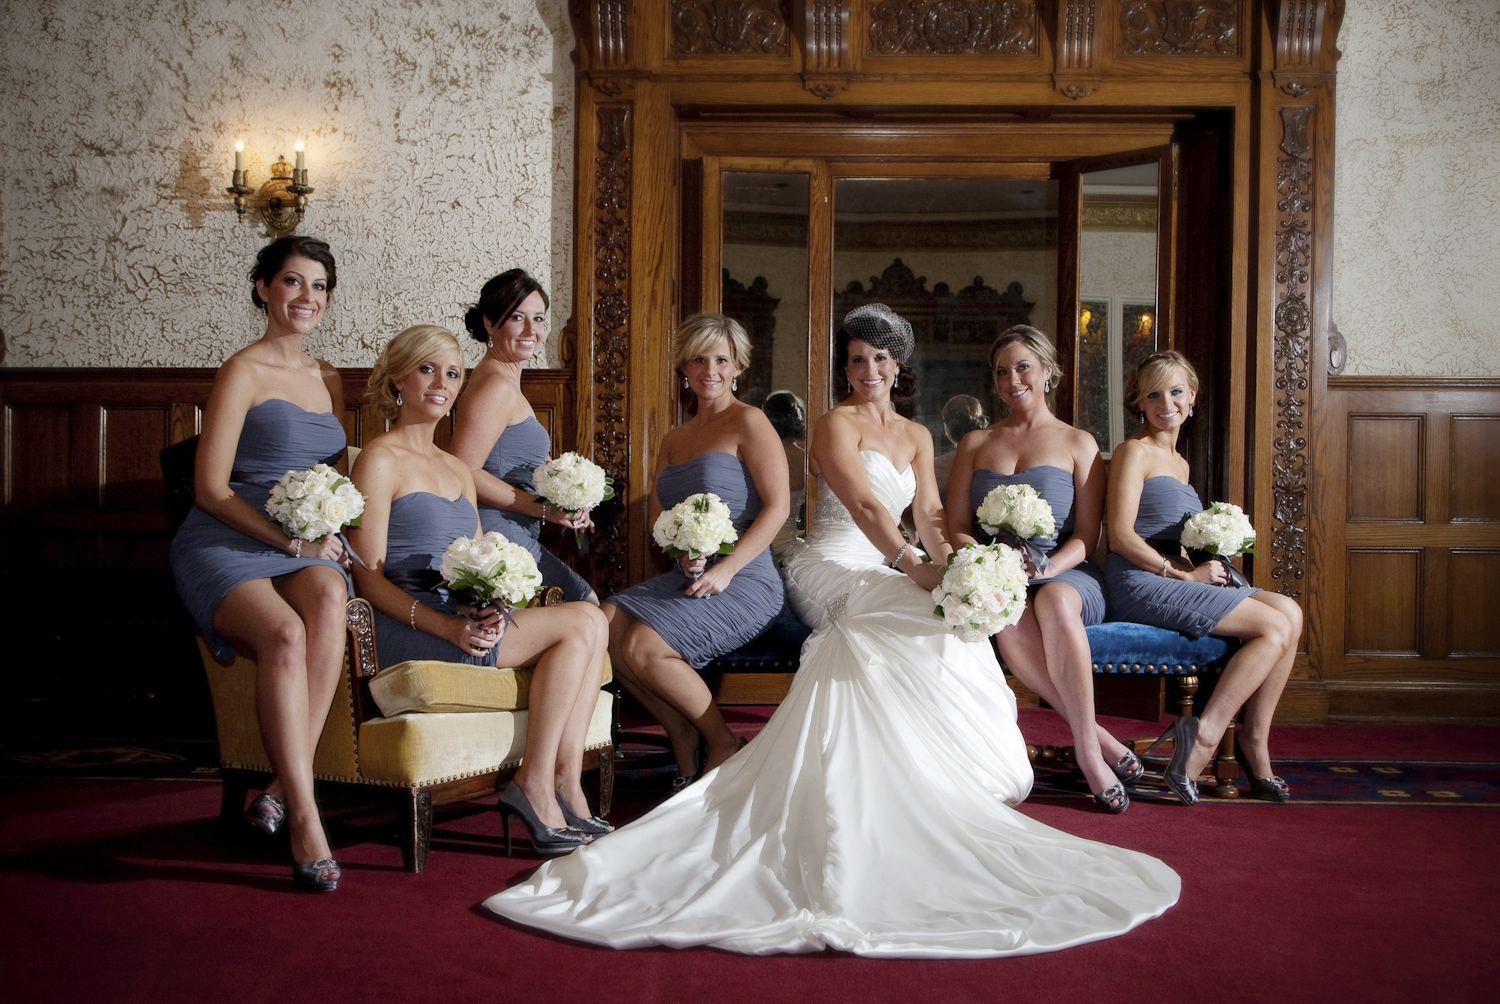 Indianapolis-Indiana-wedding-photography-Scottish-Rite-Crowes-Eye-Photography.jpg